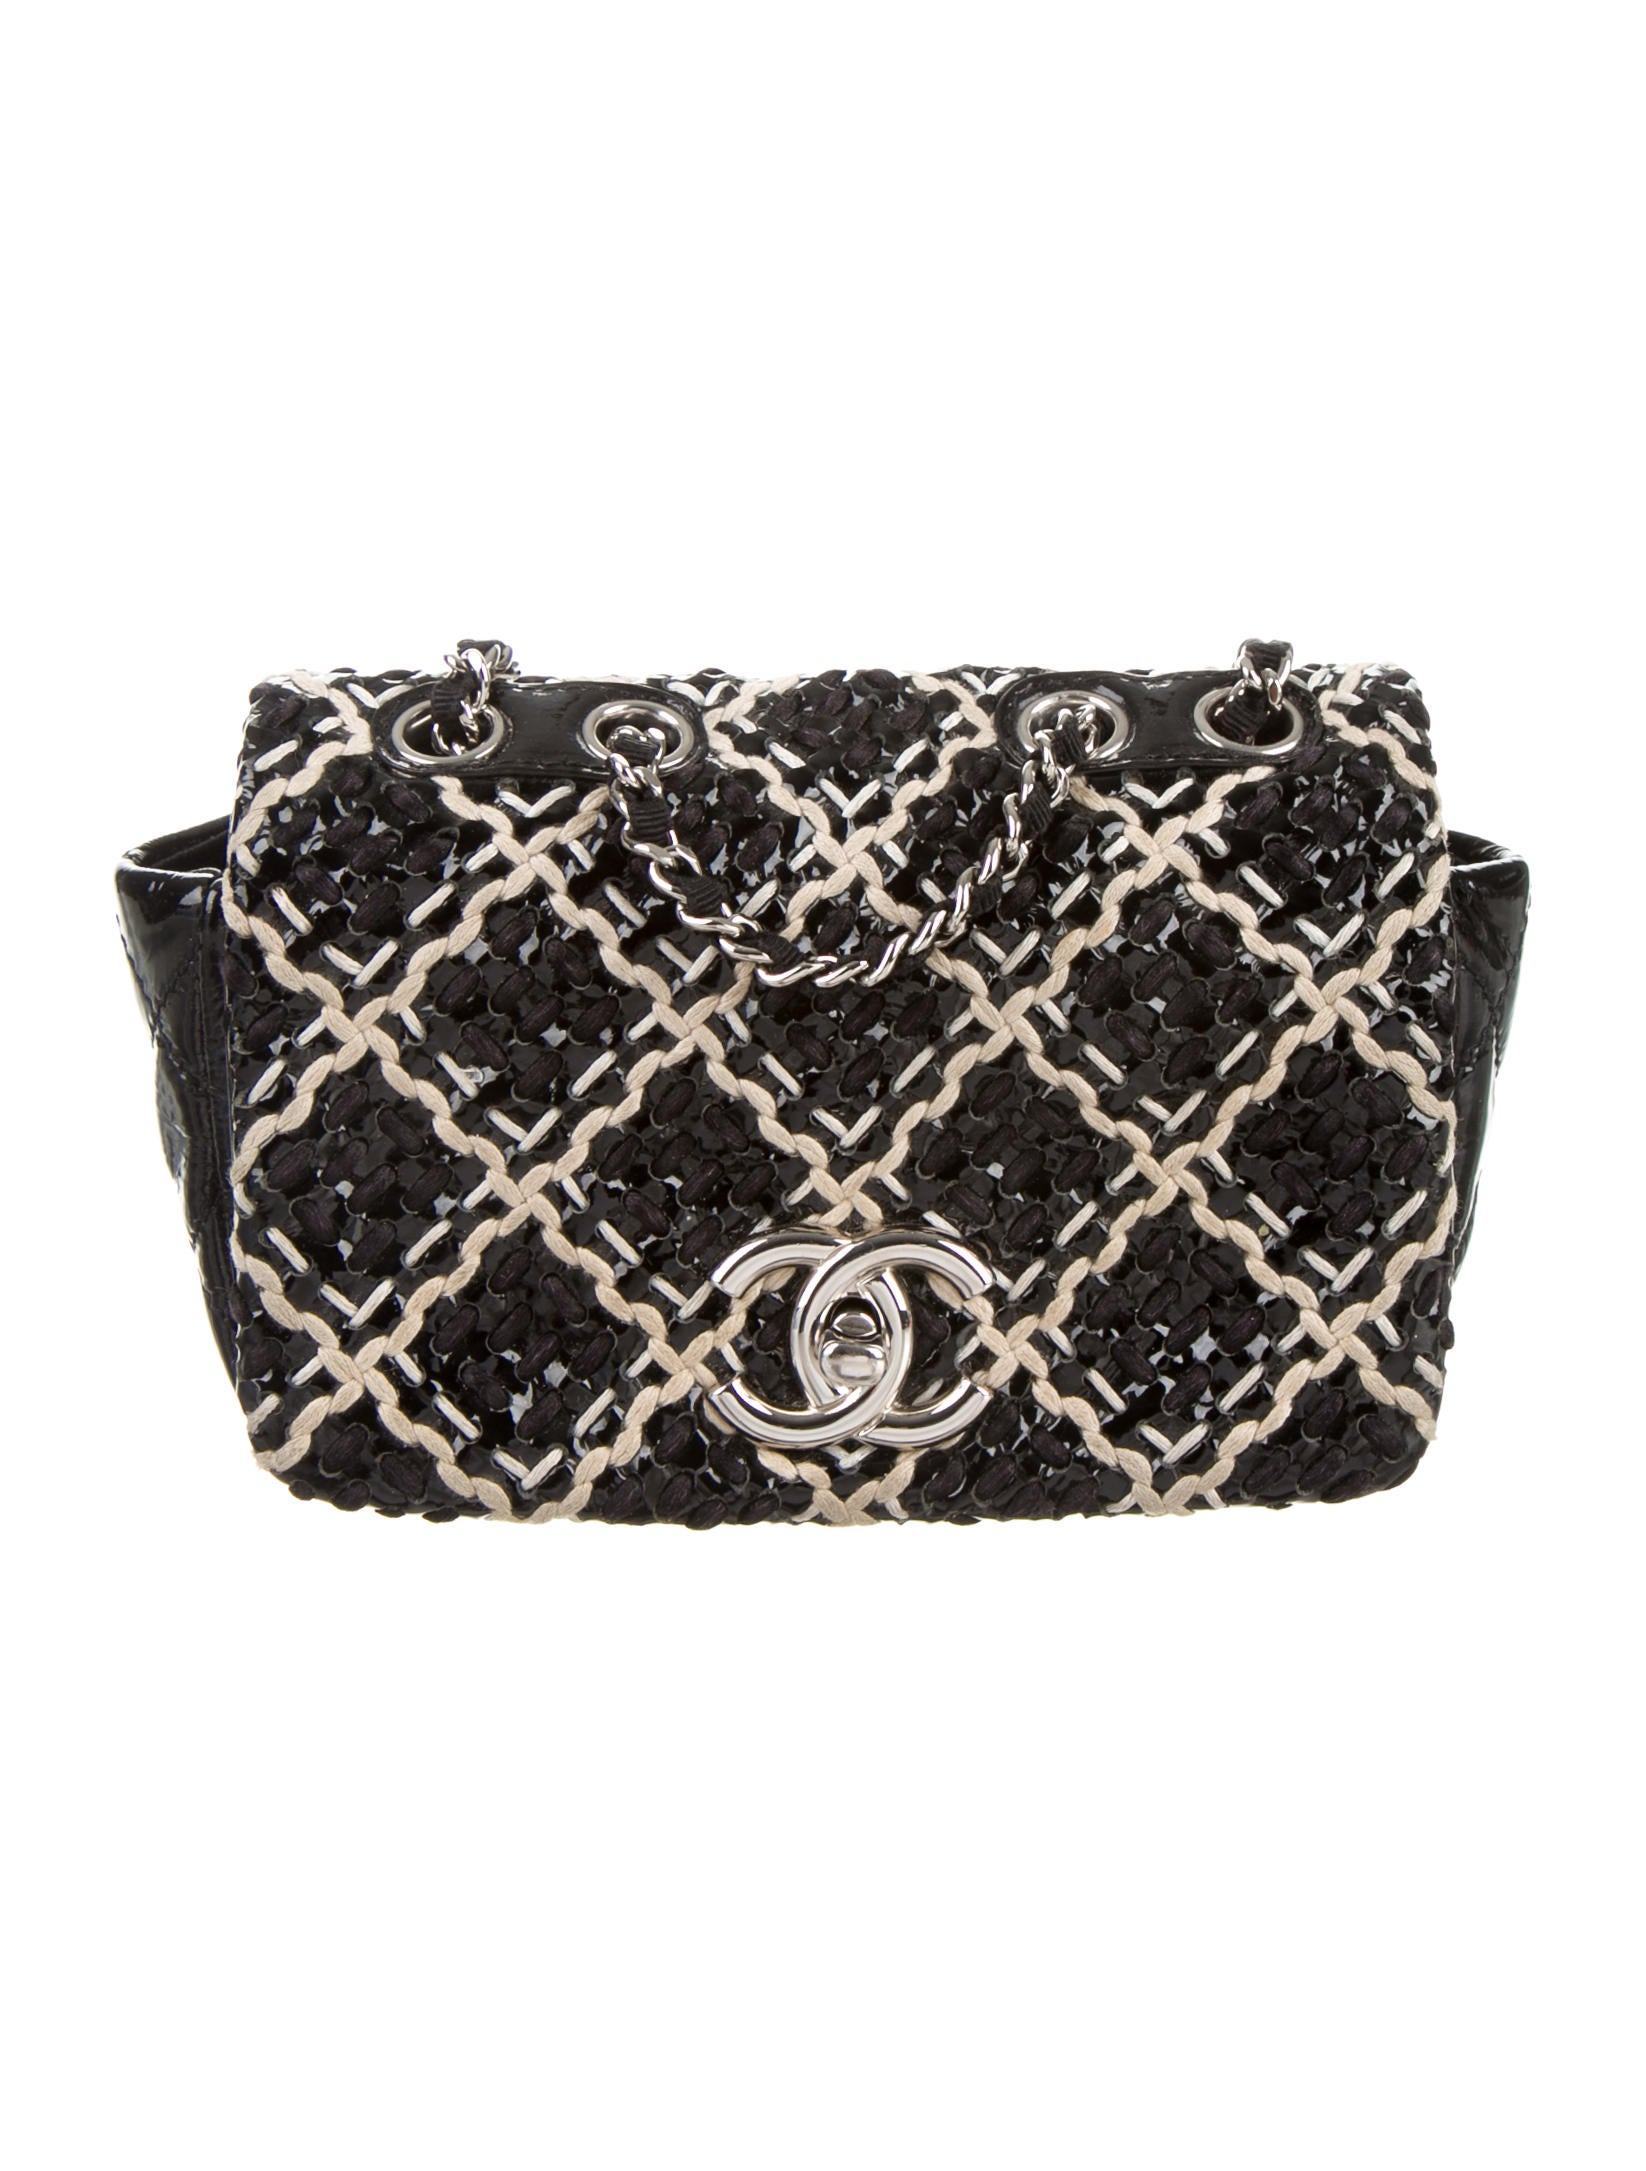 b76e8818b582 Chanel Patent Tweed Mini Classic Flap Bag - Handbags - CHA115835 ...